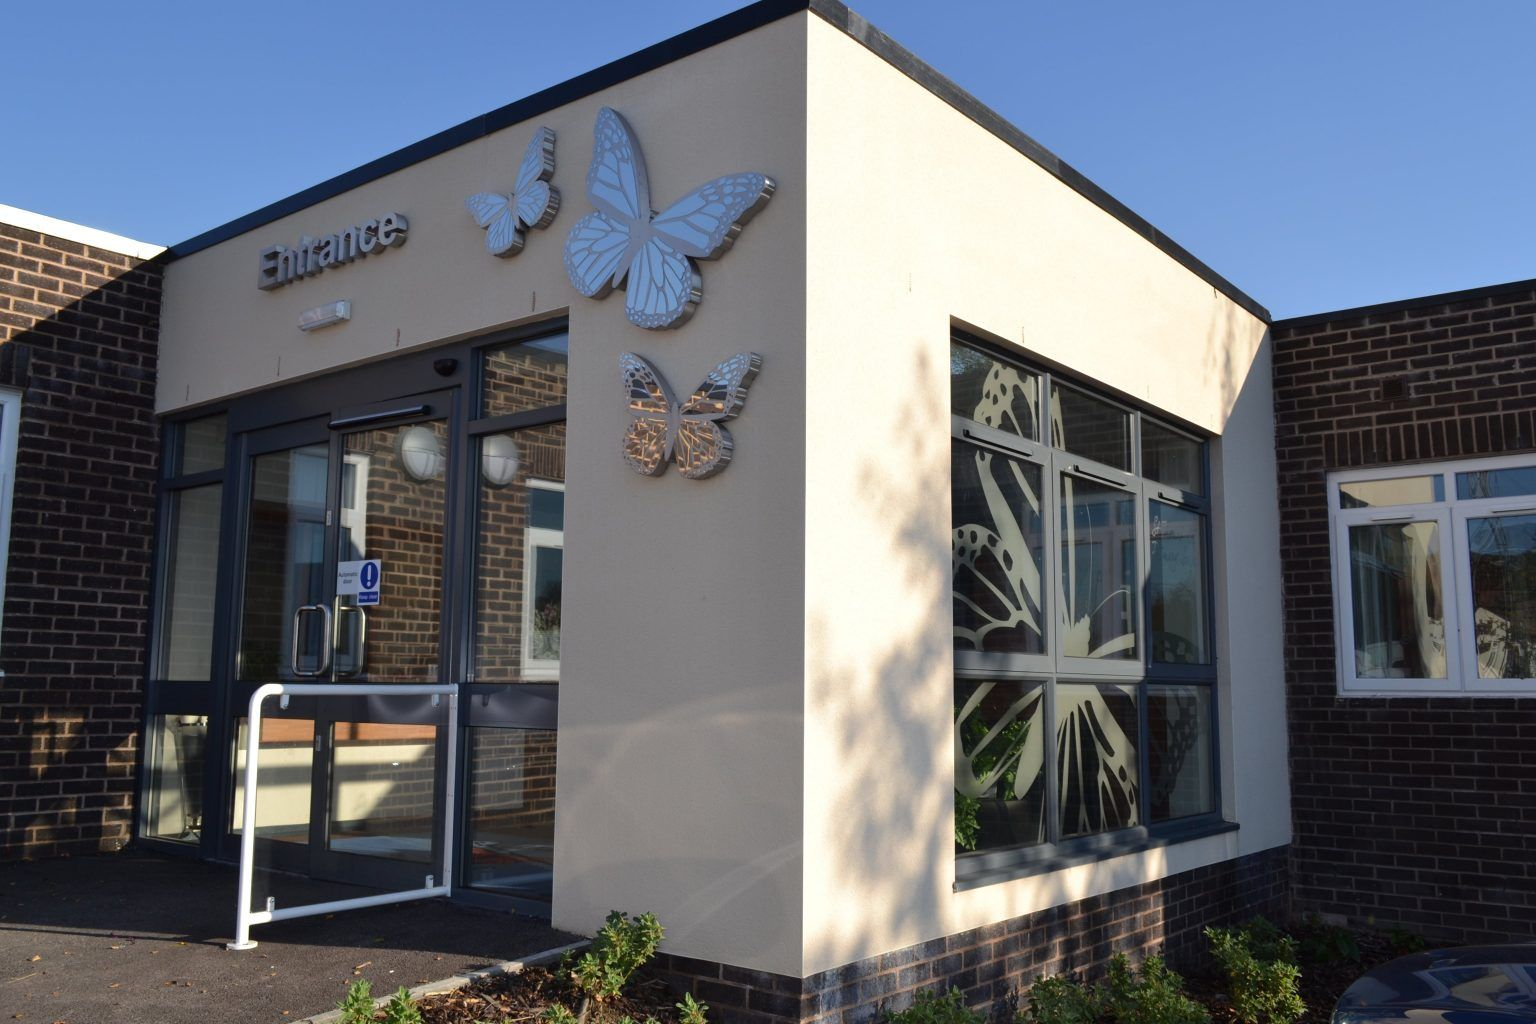 Built up Brushed Stainless Steel Butterfly With Mirrored Finish Overlay & Built Up Stainless Steel Letters